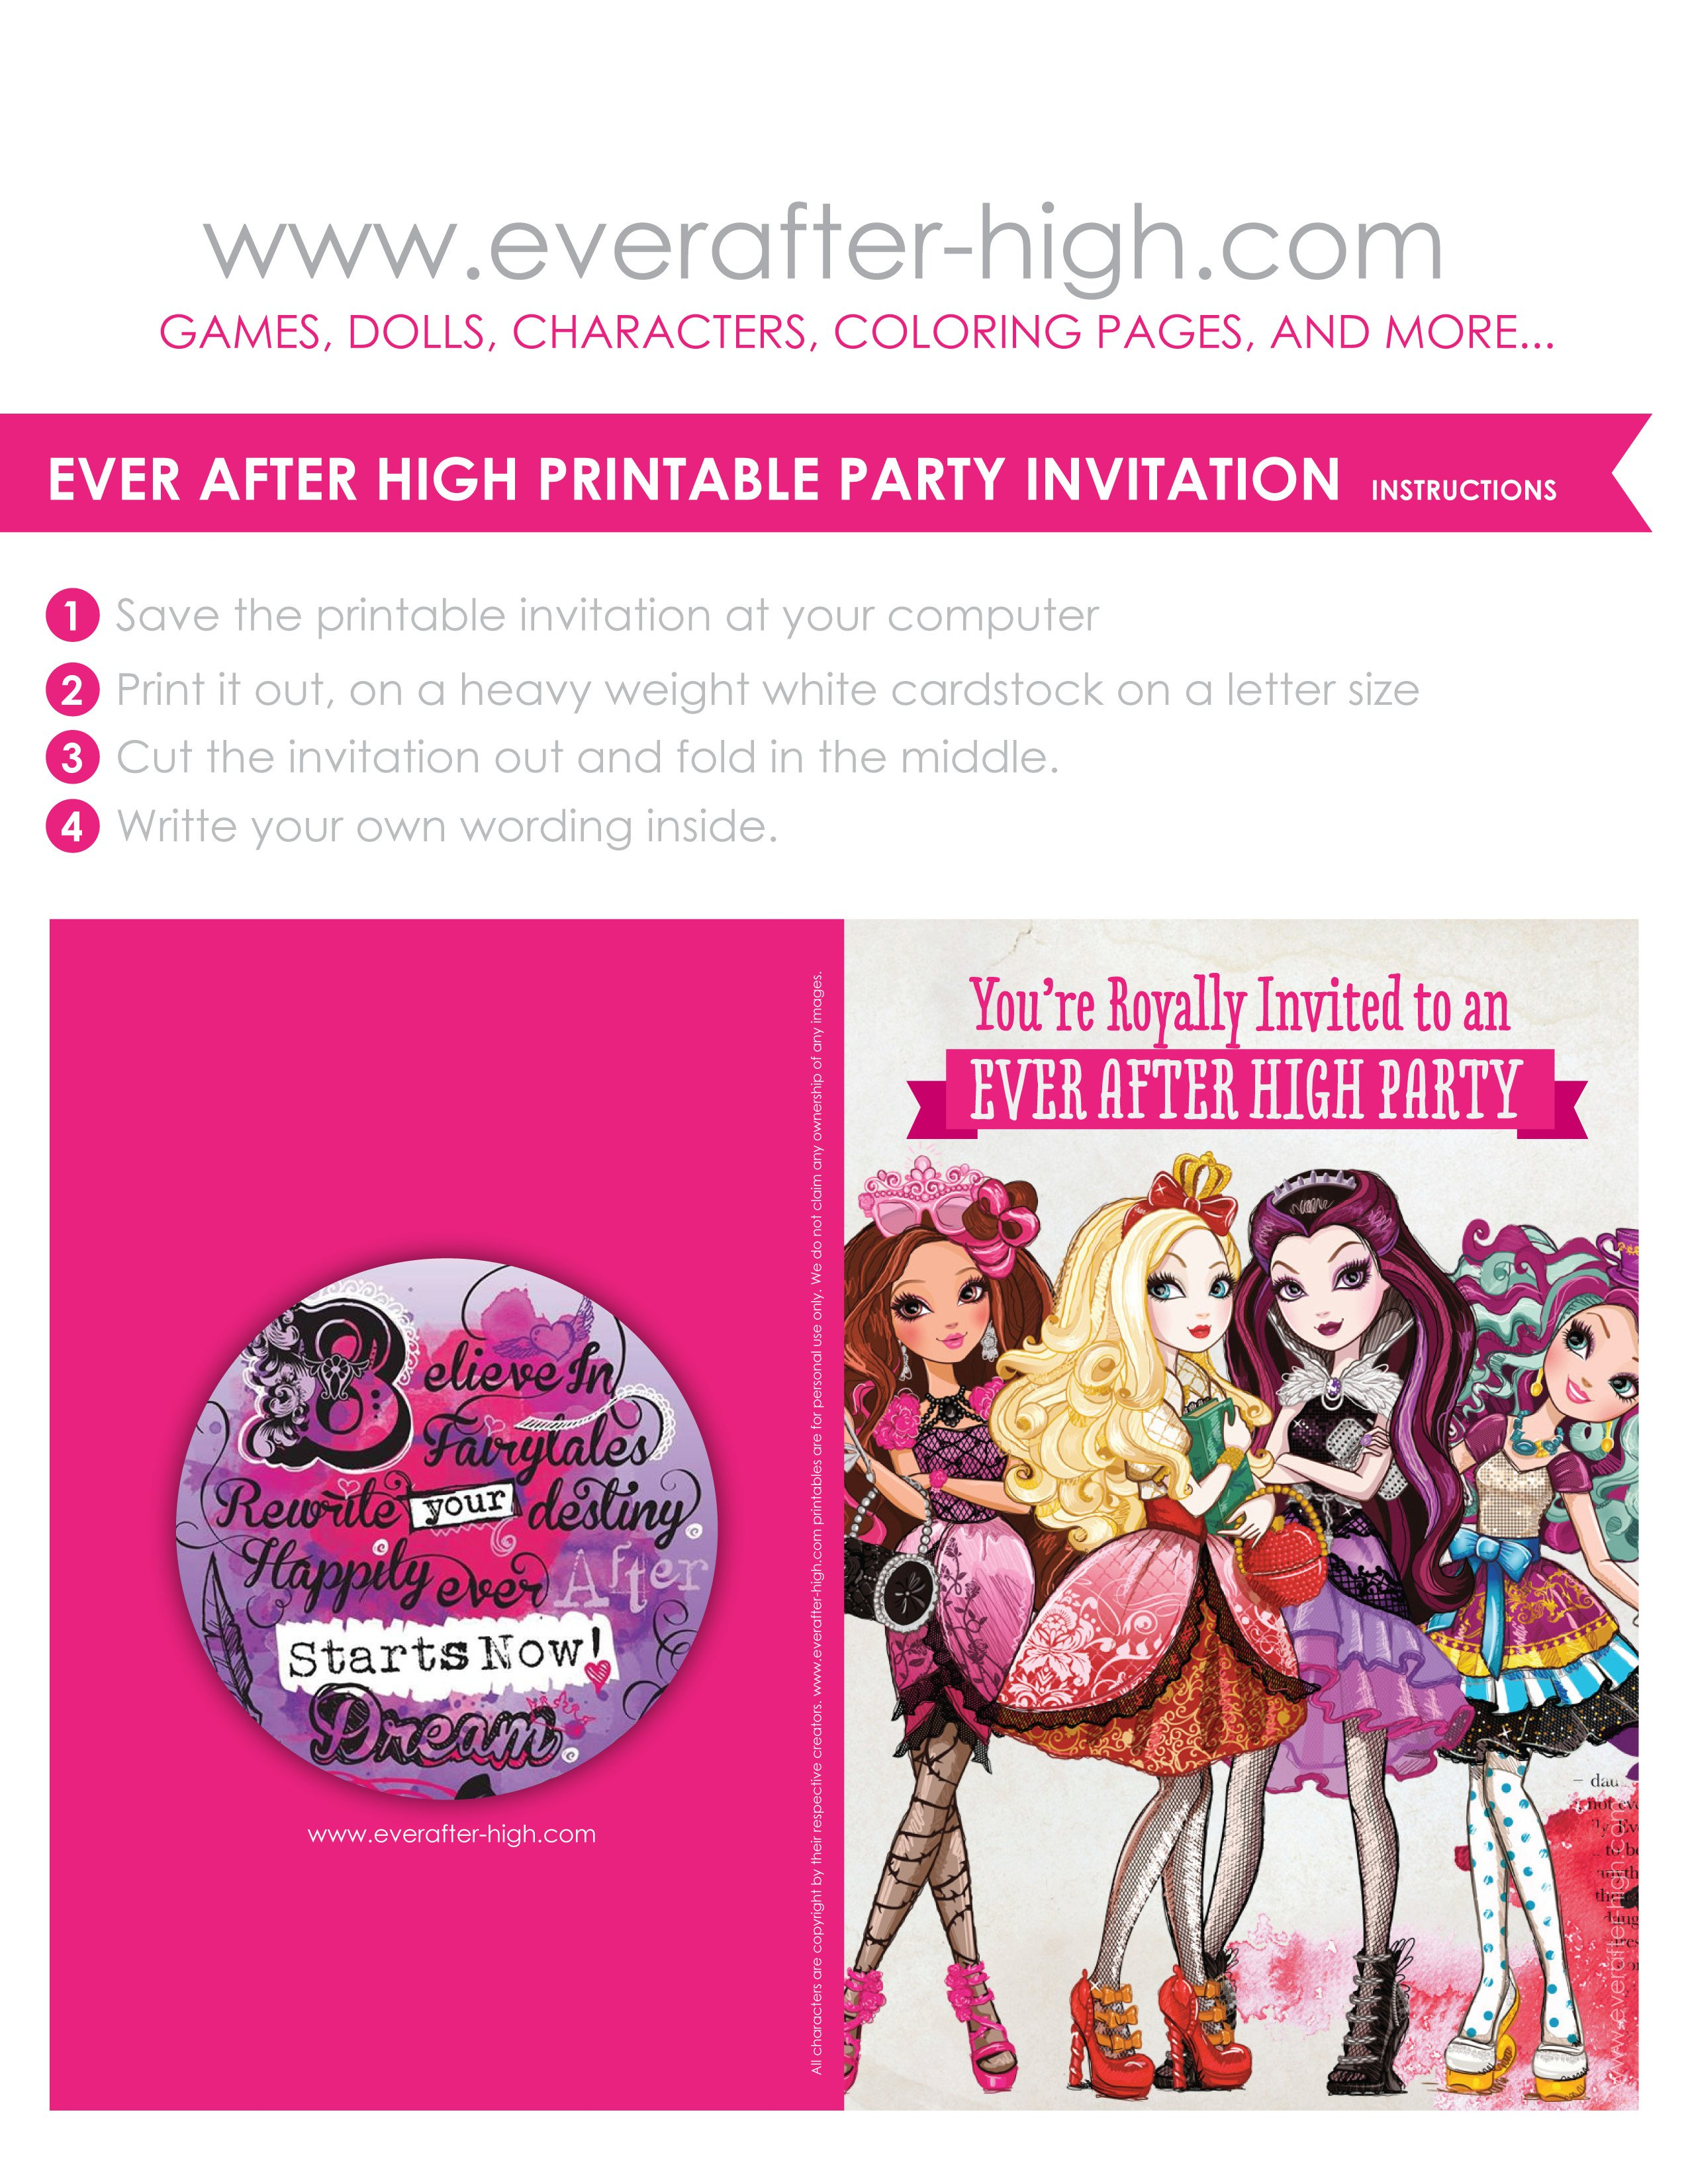 Ever After High Birthday Party Theme Ideas & Supplies